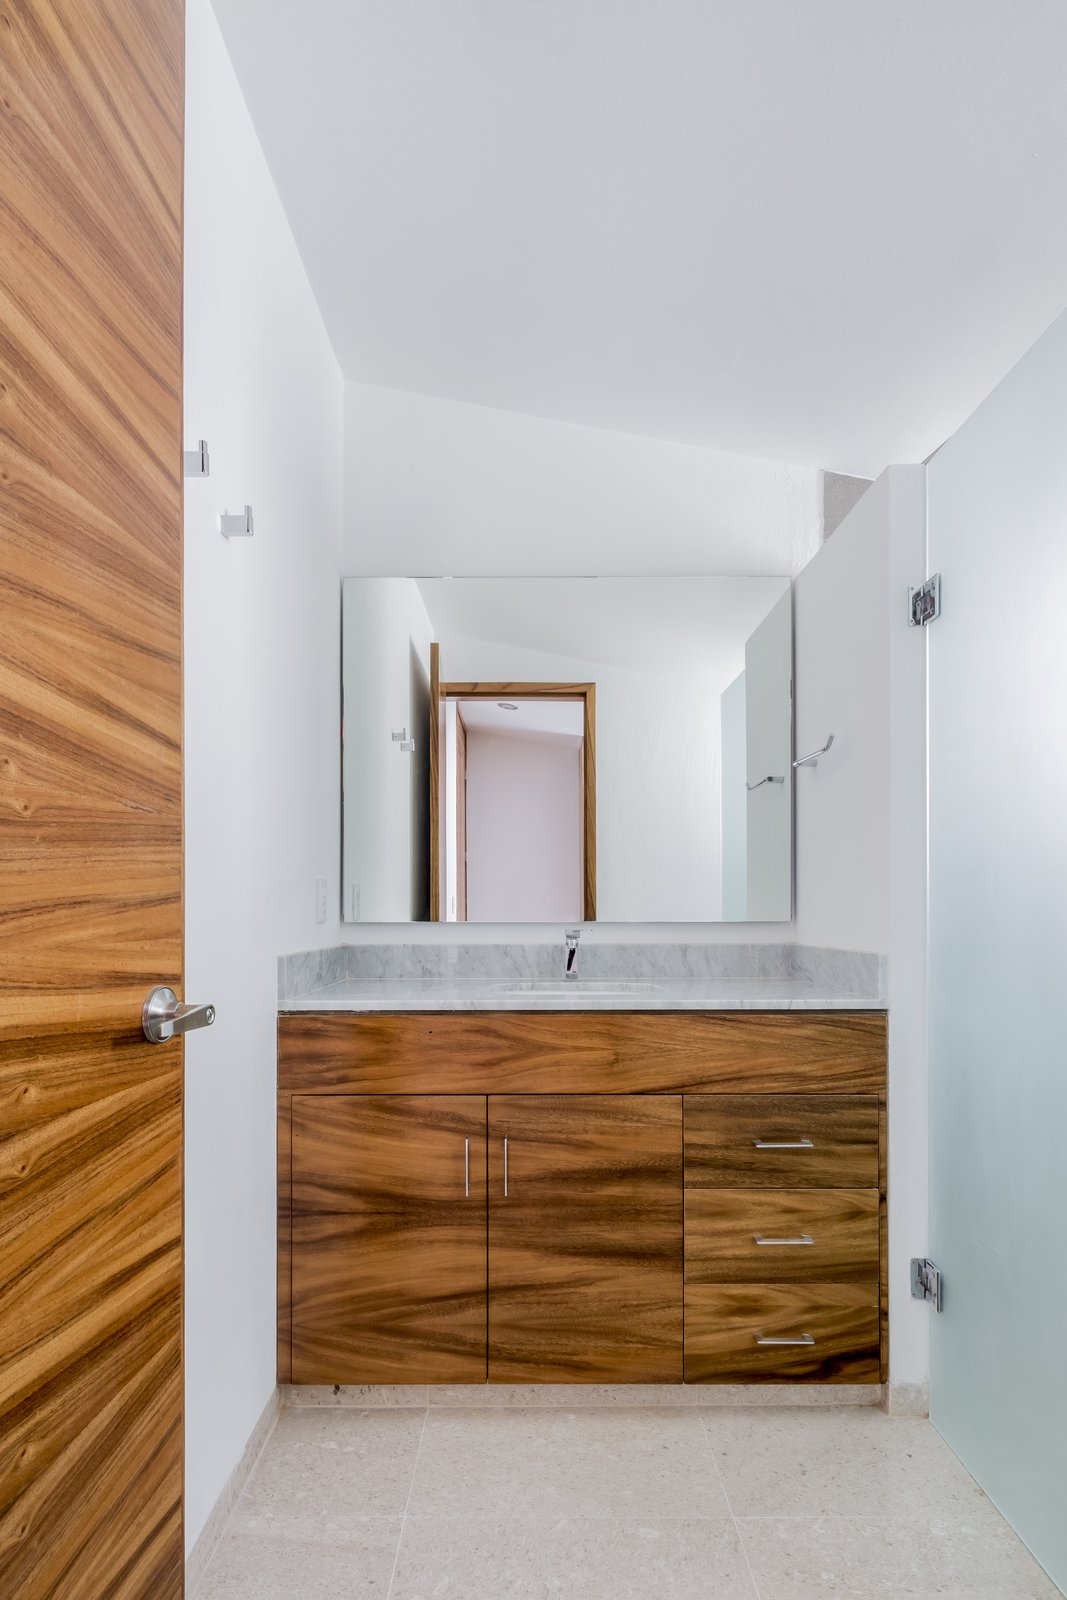 Tagged: Bath Room, Marble Floor, Marble Counter, and Ceiling Lighting.  CASA VALLE by Sergio Villalobos